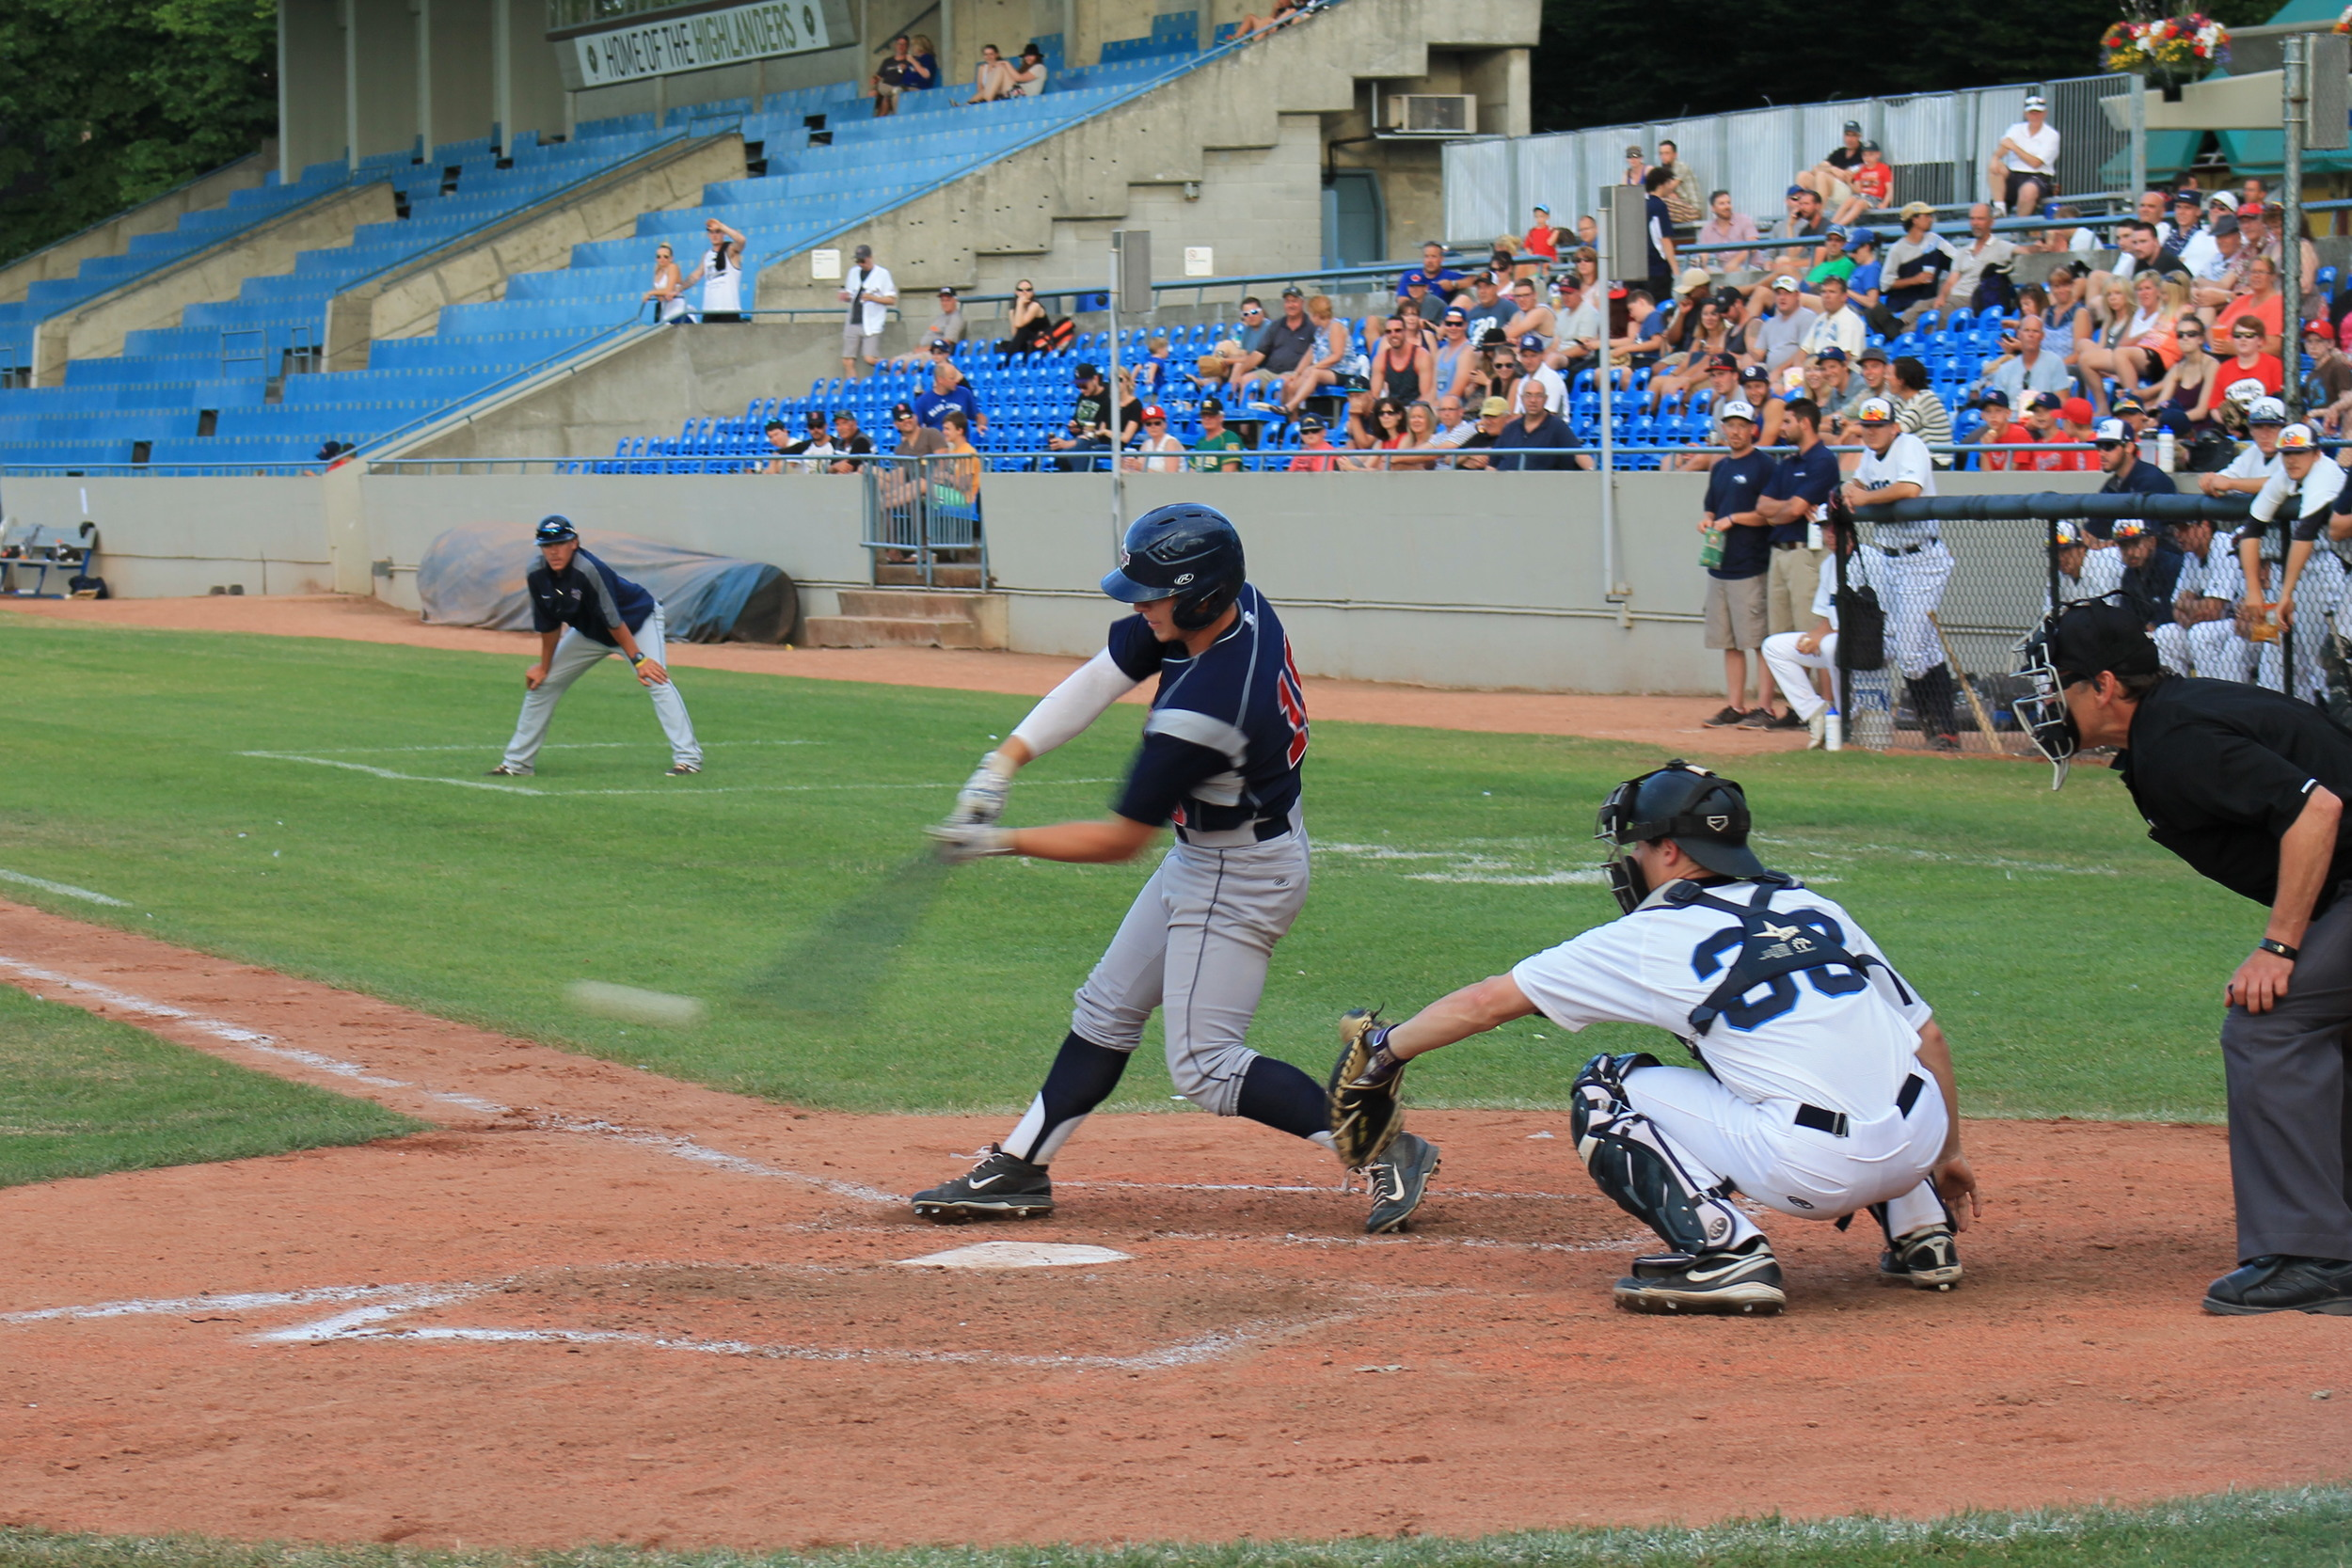 Sheldon Liikala had a four-hit afternoon, and the AppleSox a new high - 17 hits - but the Sox late rally was squandered in the eleventh, on a bases loaded walk, to win it for the HarbourCats.